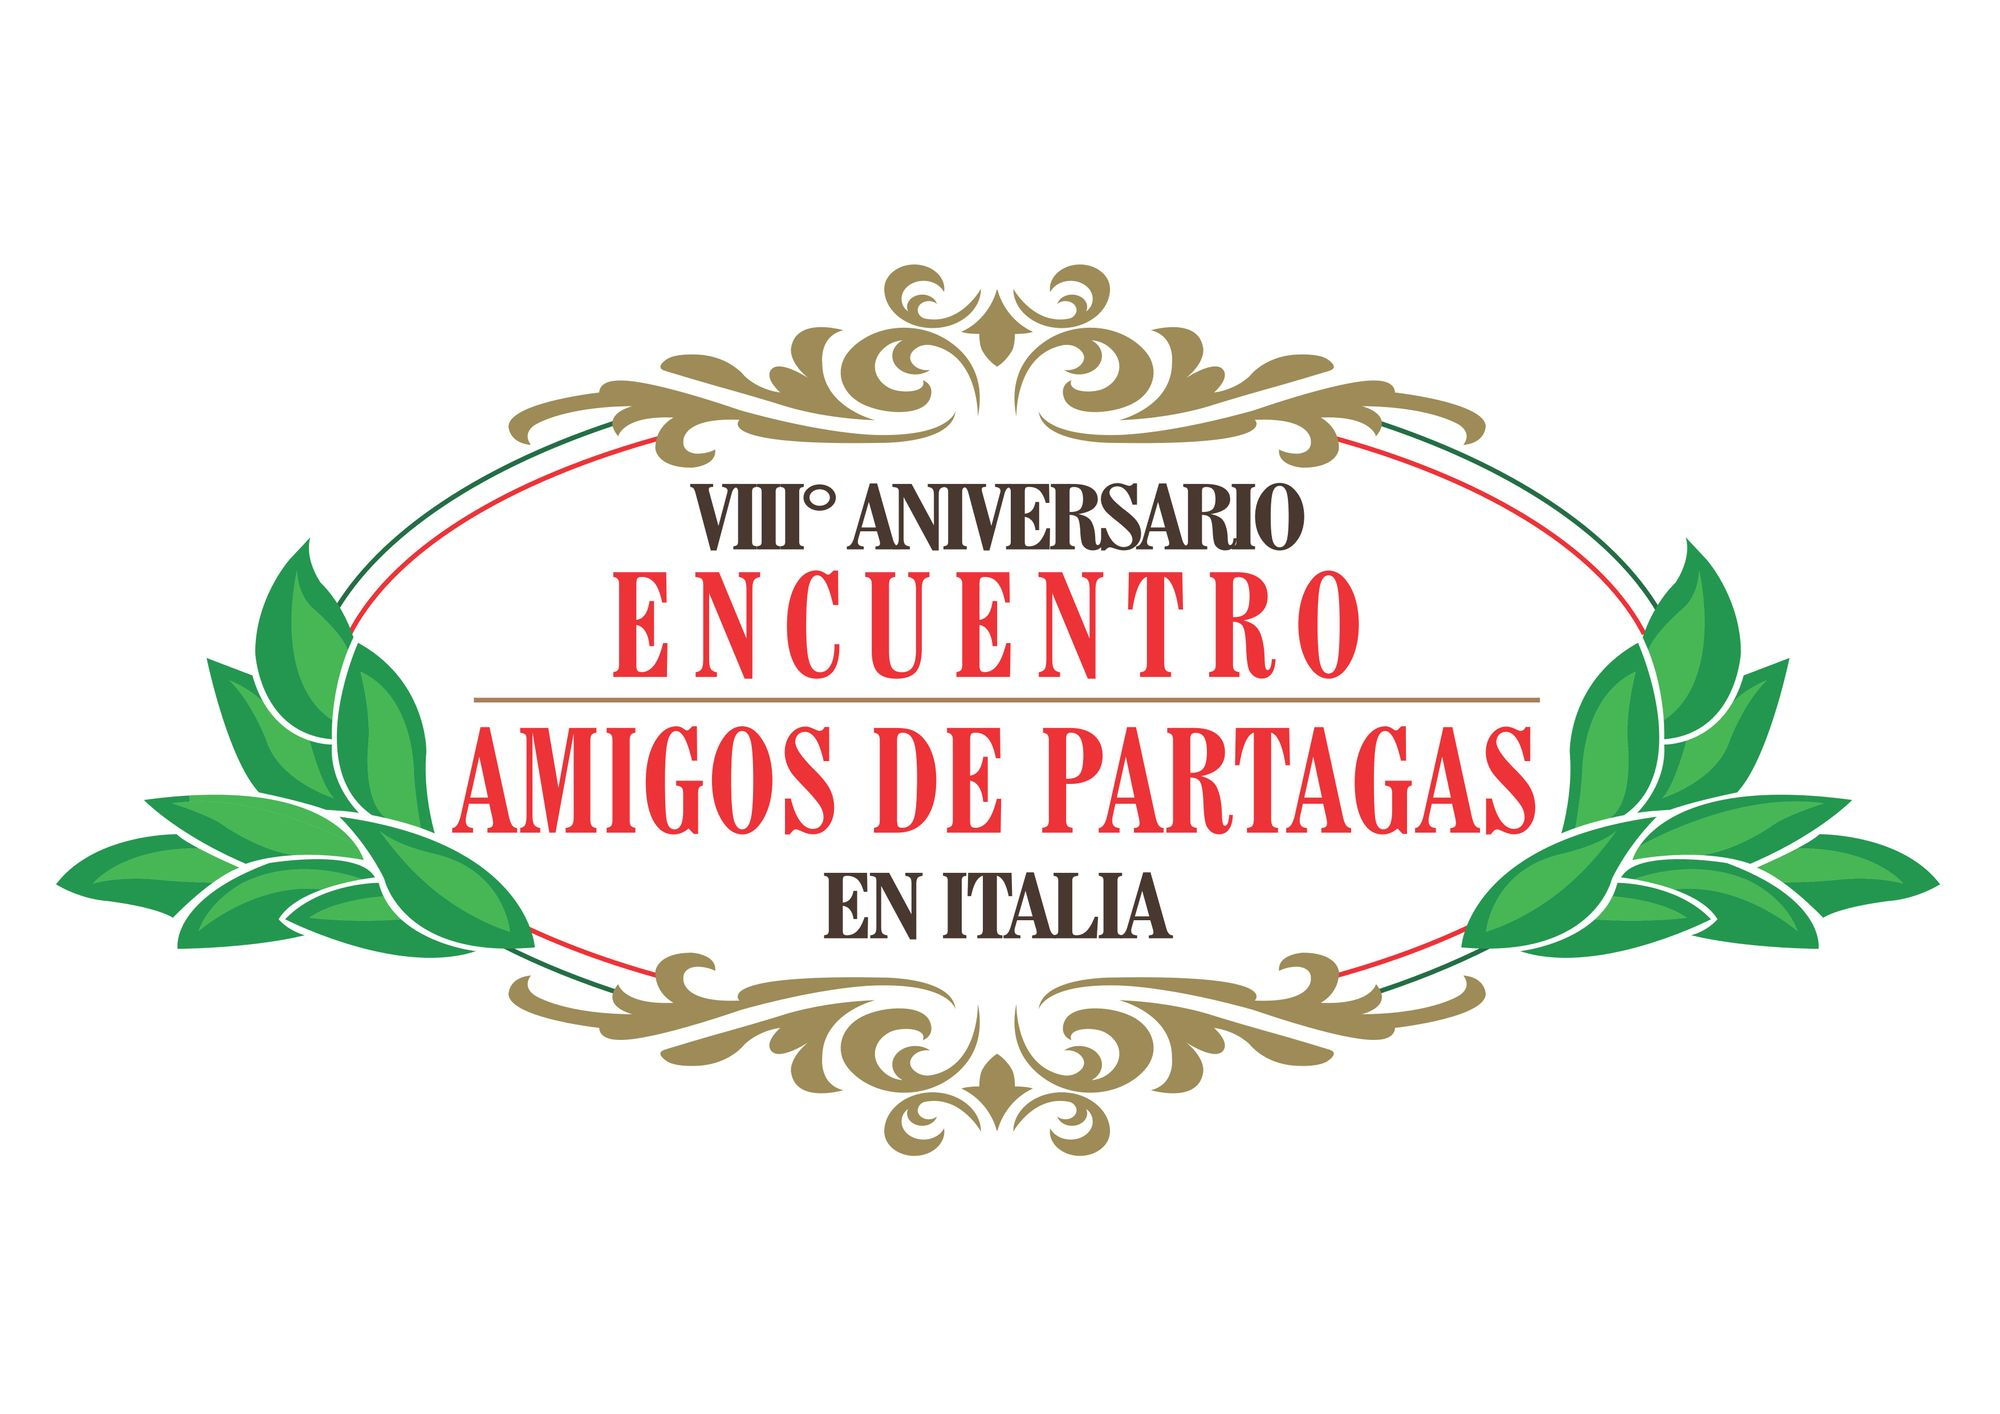 Eighth Meeting of Friends of Partagas in Italy.